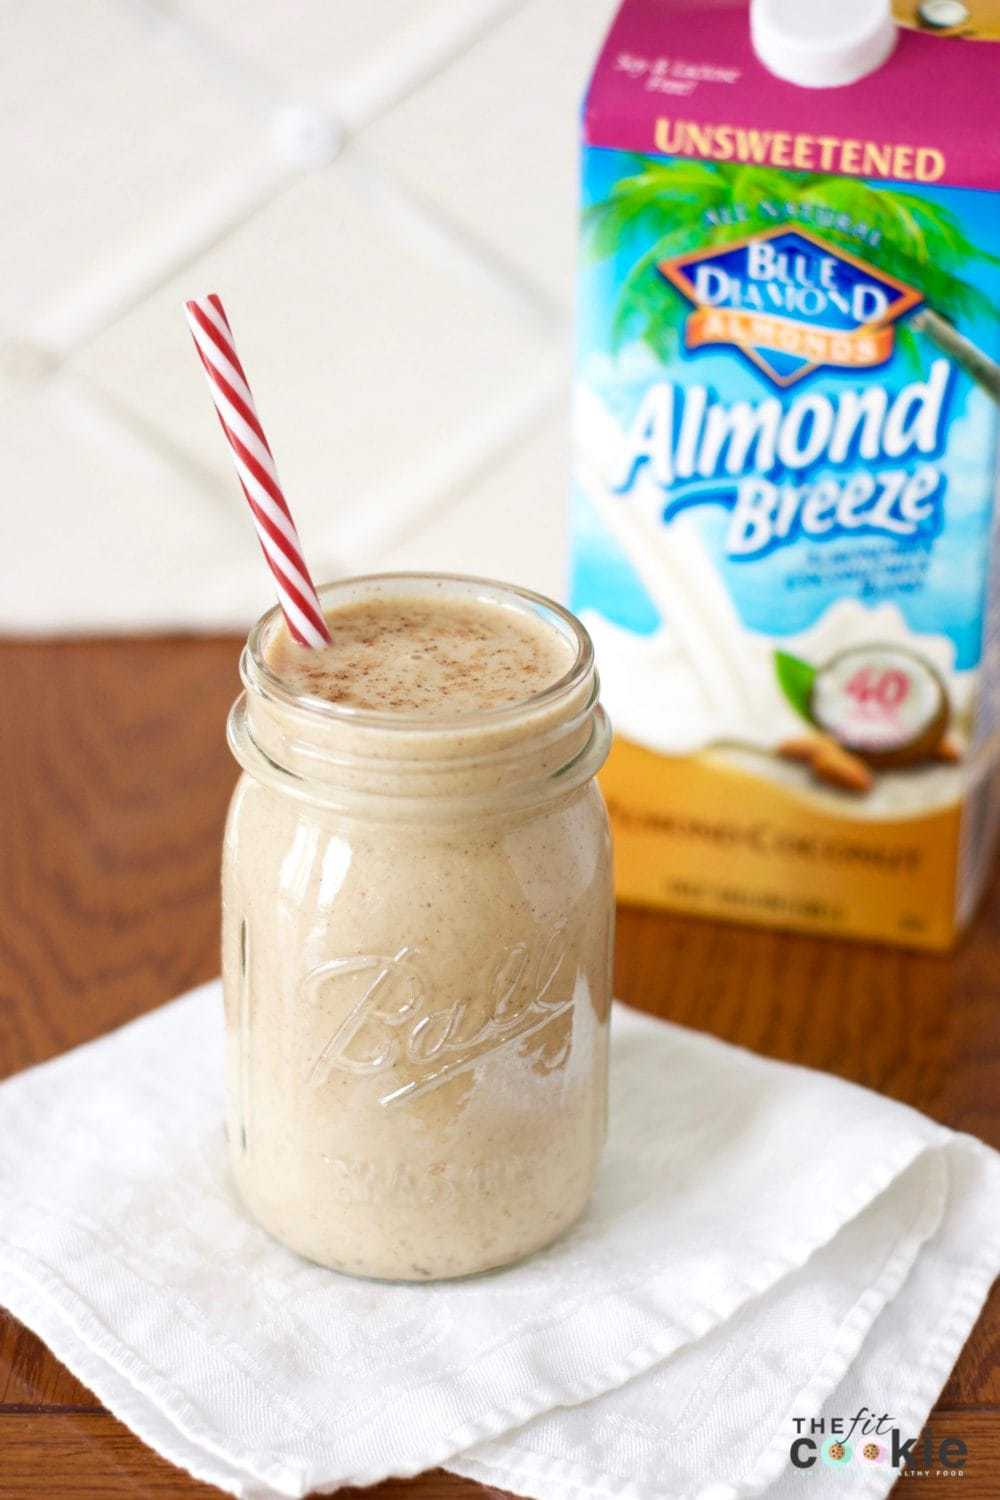 Creamy and delicious, you'll never know that this Eggnog Protein Shake is #healthy and #vegan! #ad @bluediamond @thefitcookie #glutenfree #smoothie